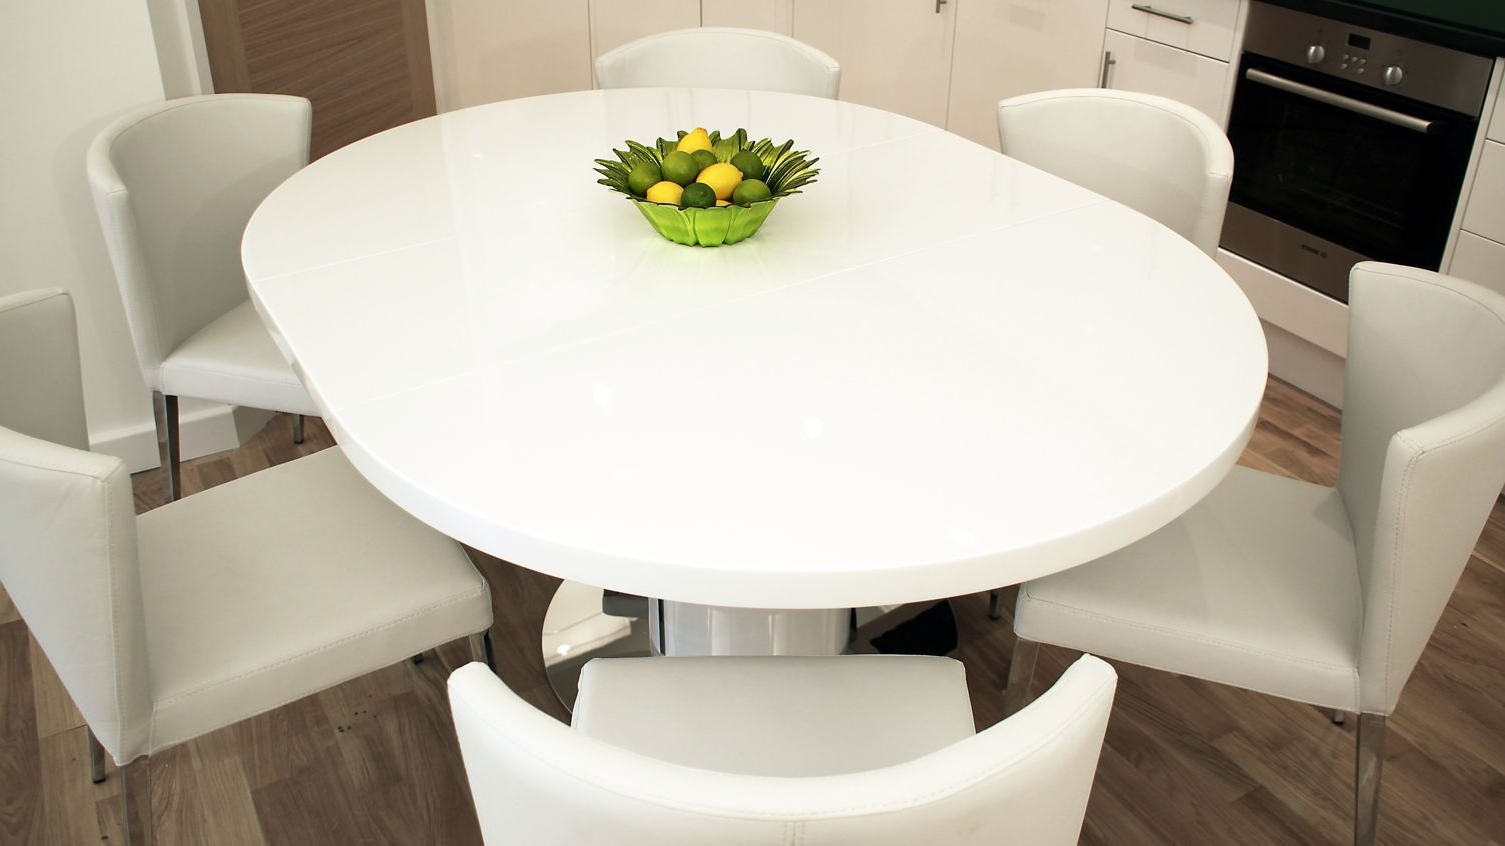 White Round Extendable Dining Tables Regarding Fashionable Morph Grey Extendable Dining Table Open Listed Extending Curva Round (View 10 of 25)